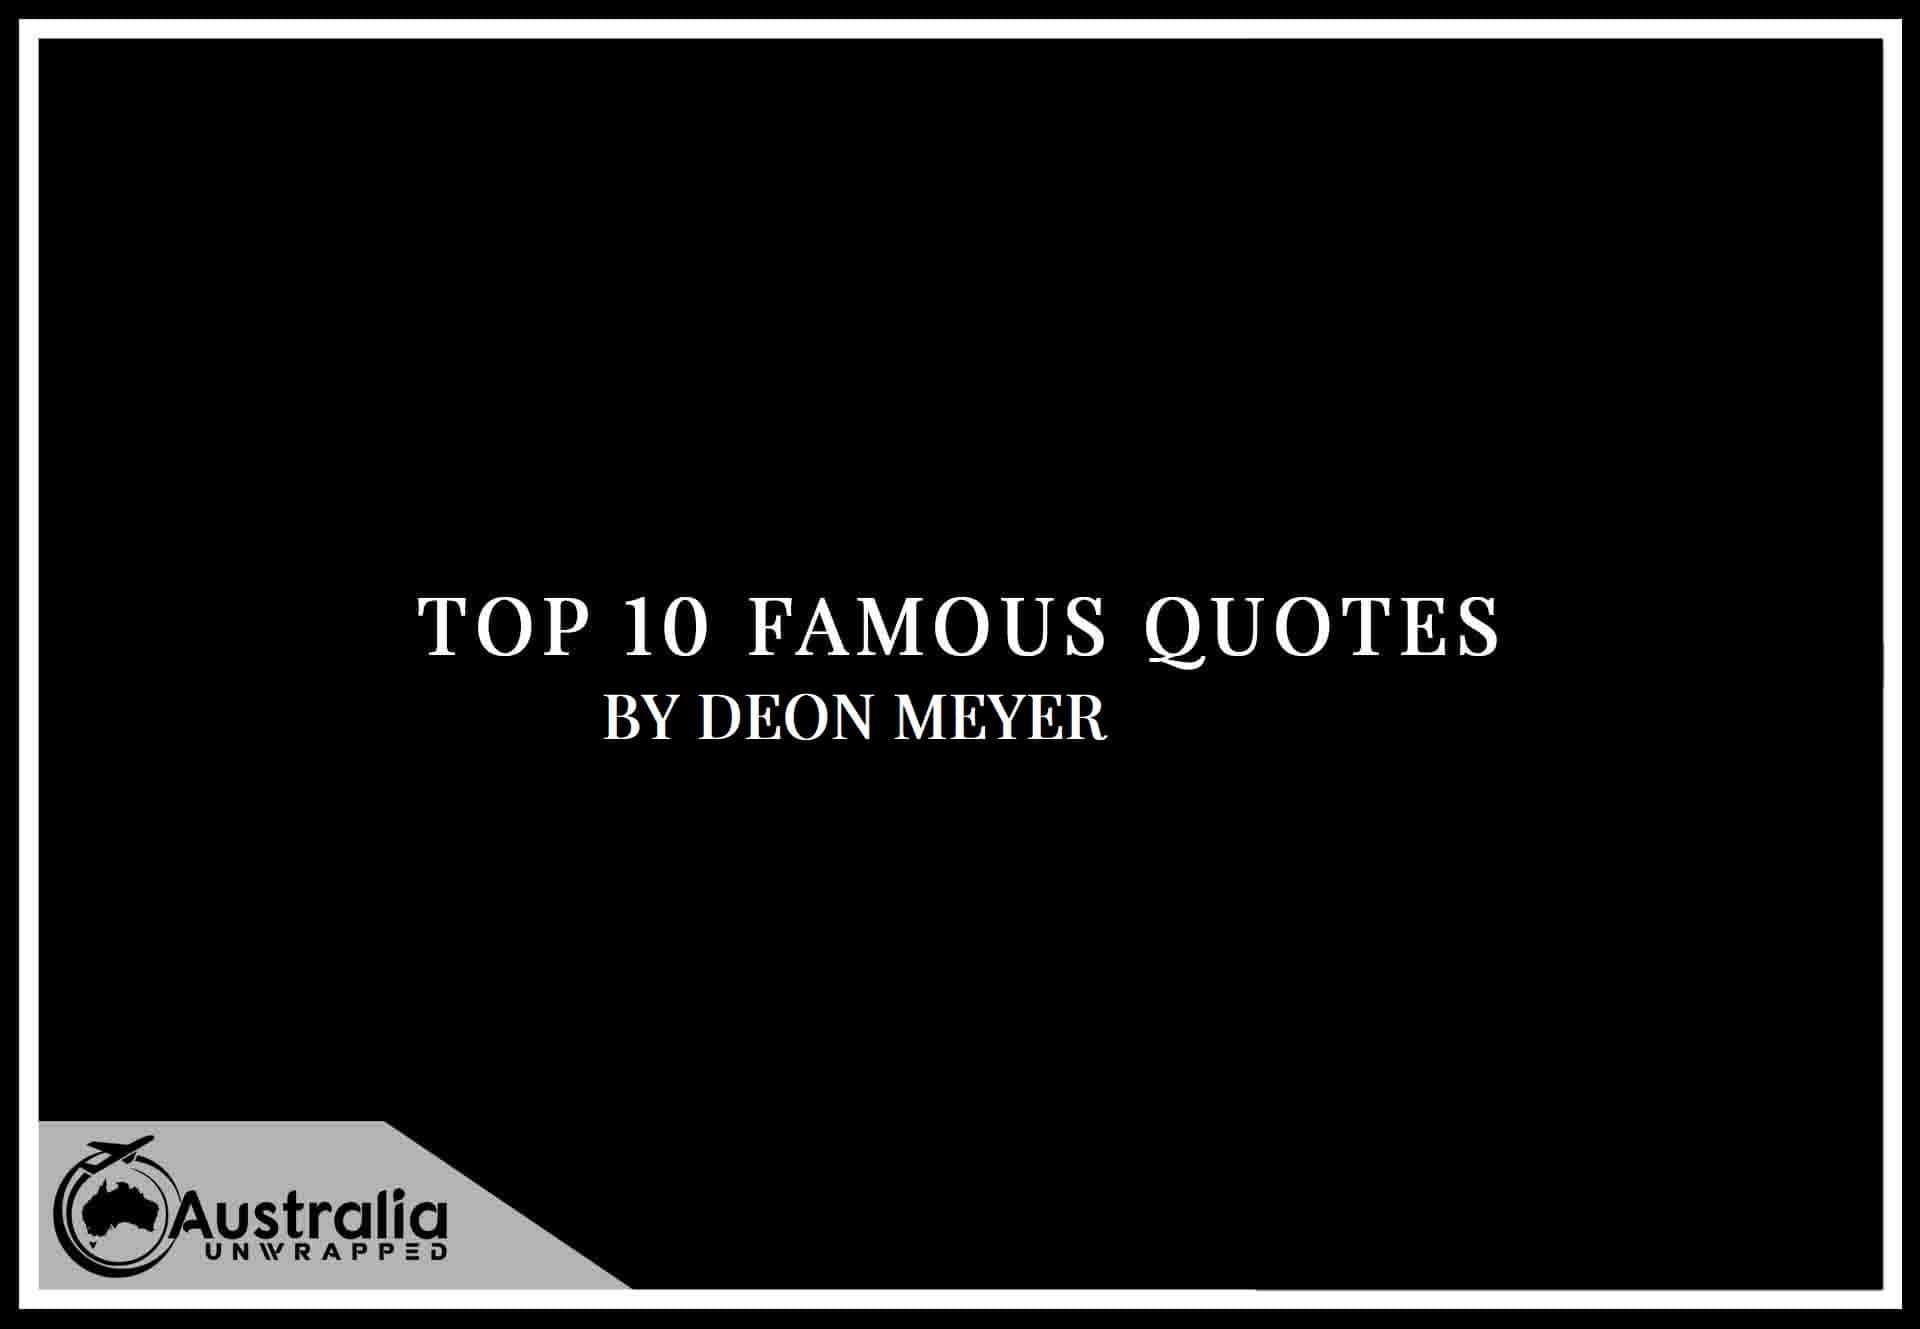 Top 10 Famous Quotes by Author Deon Meyer